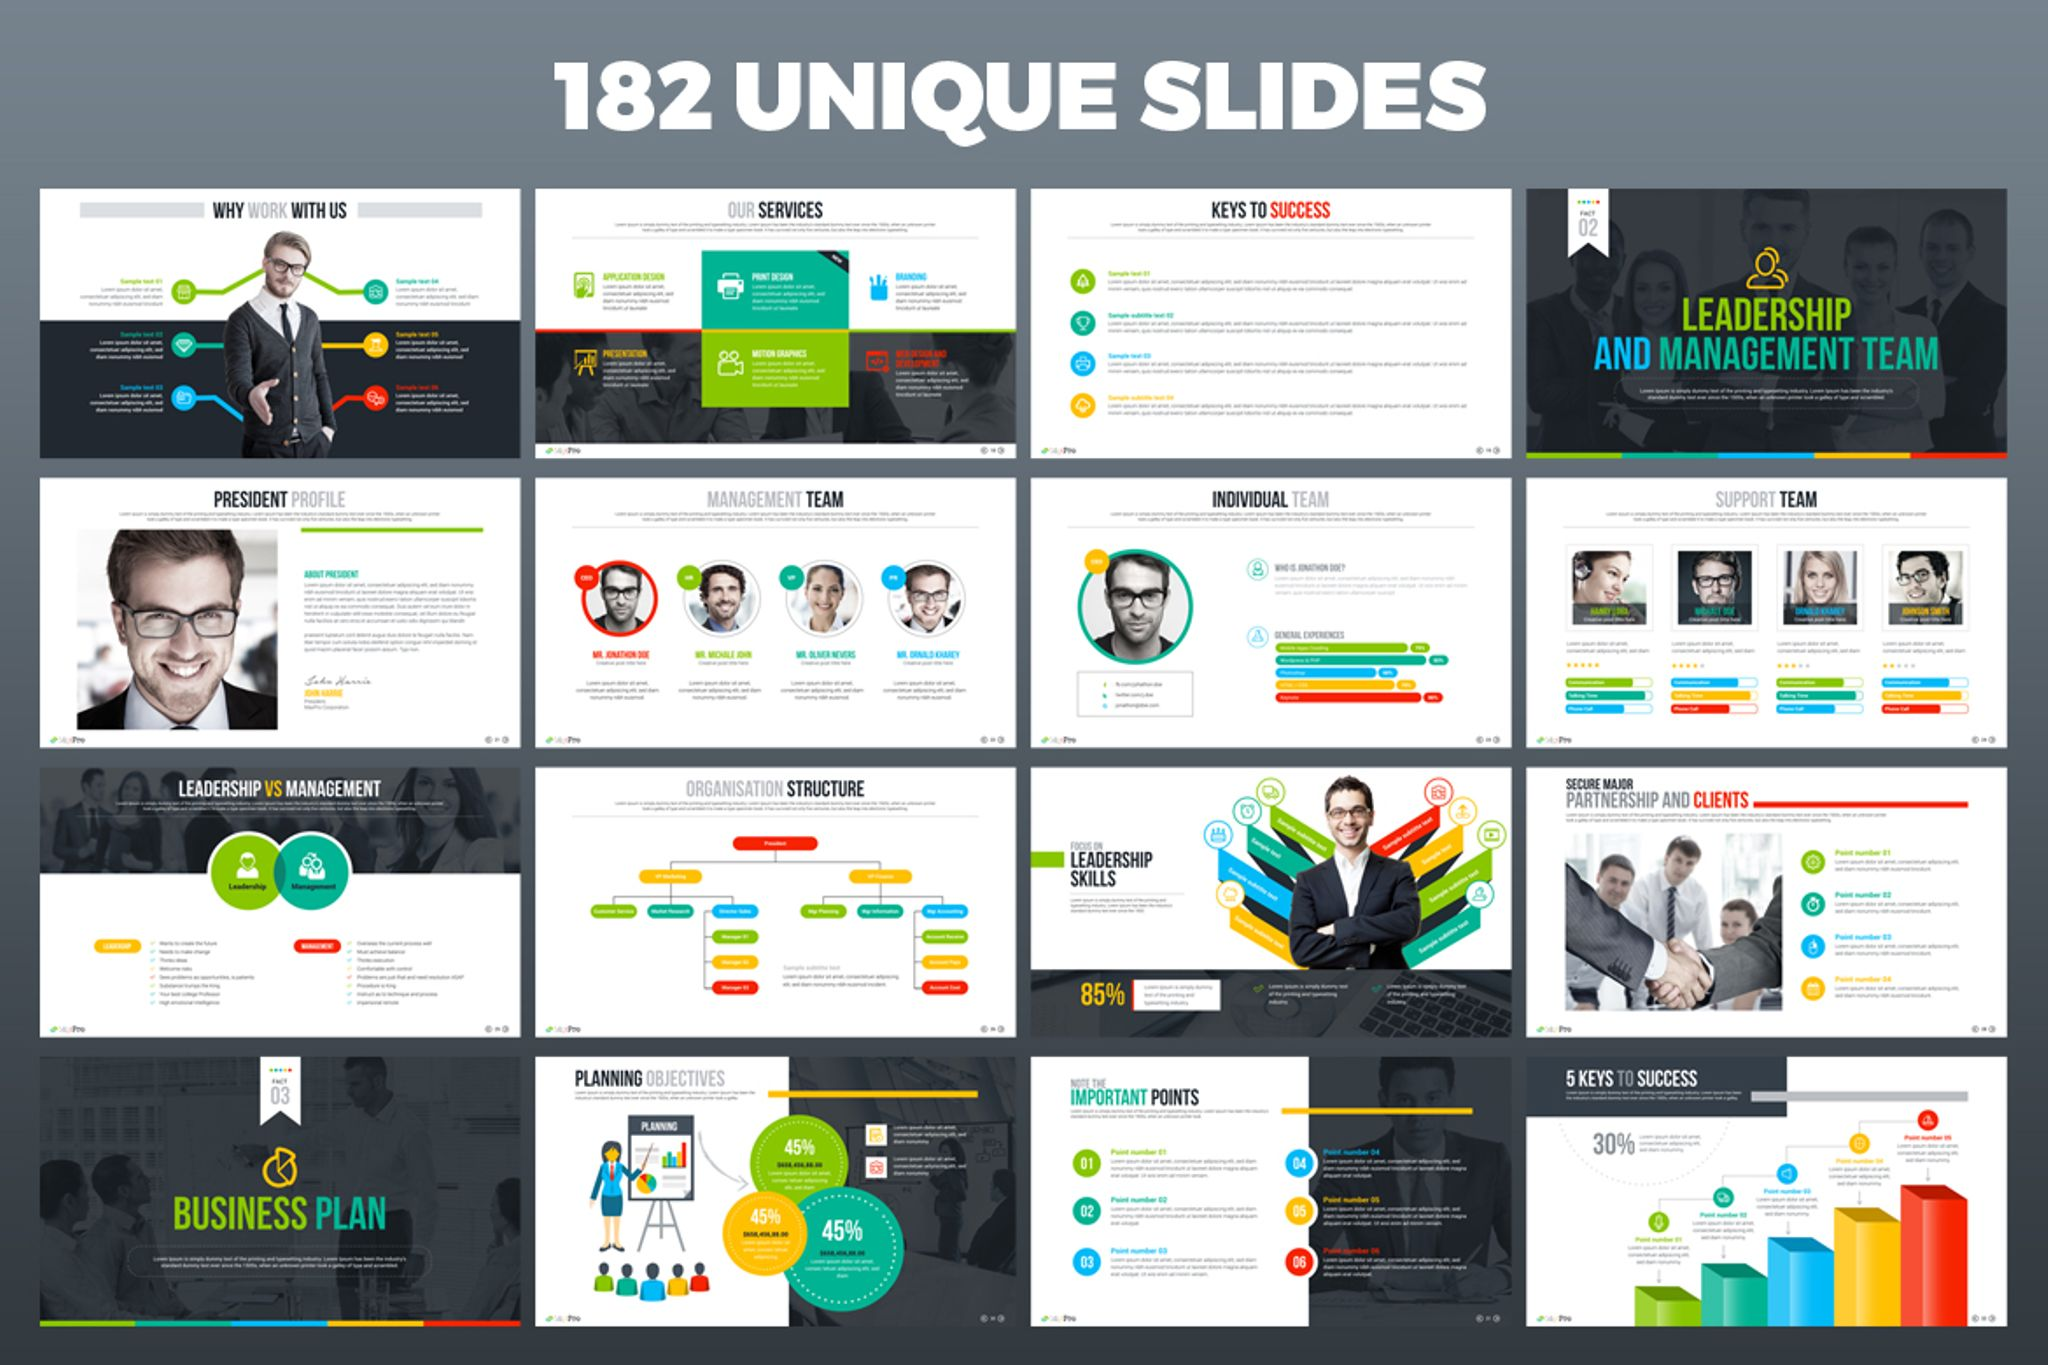 MaxPro - Business Plan PowerPoint Template #66751